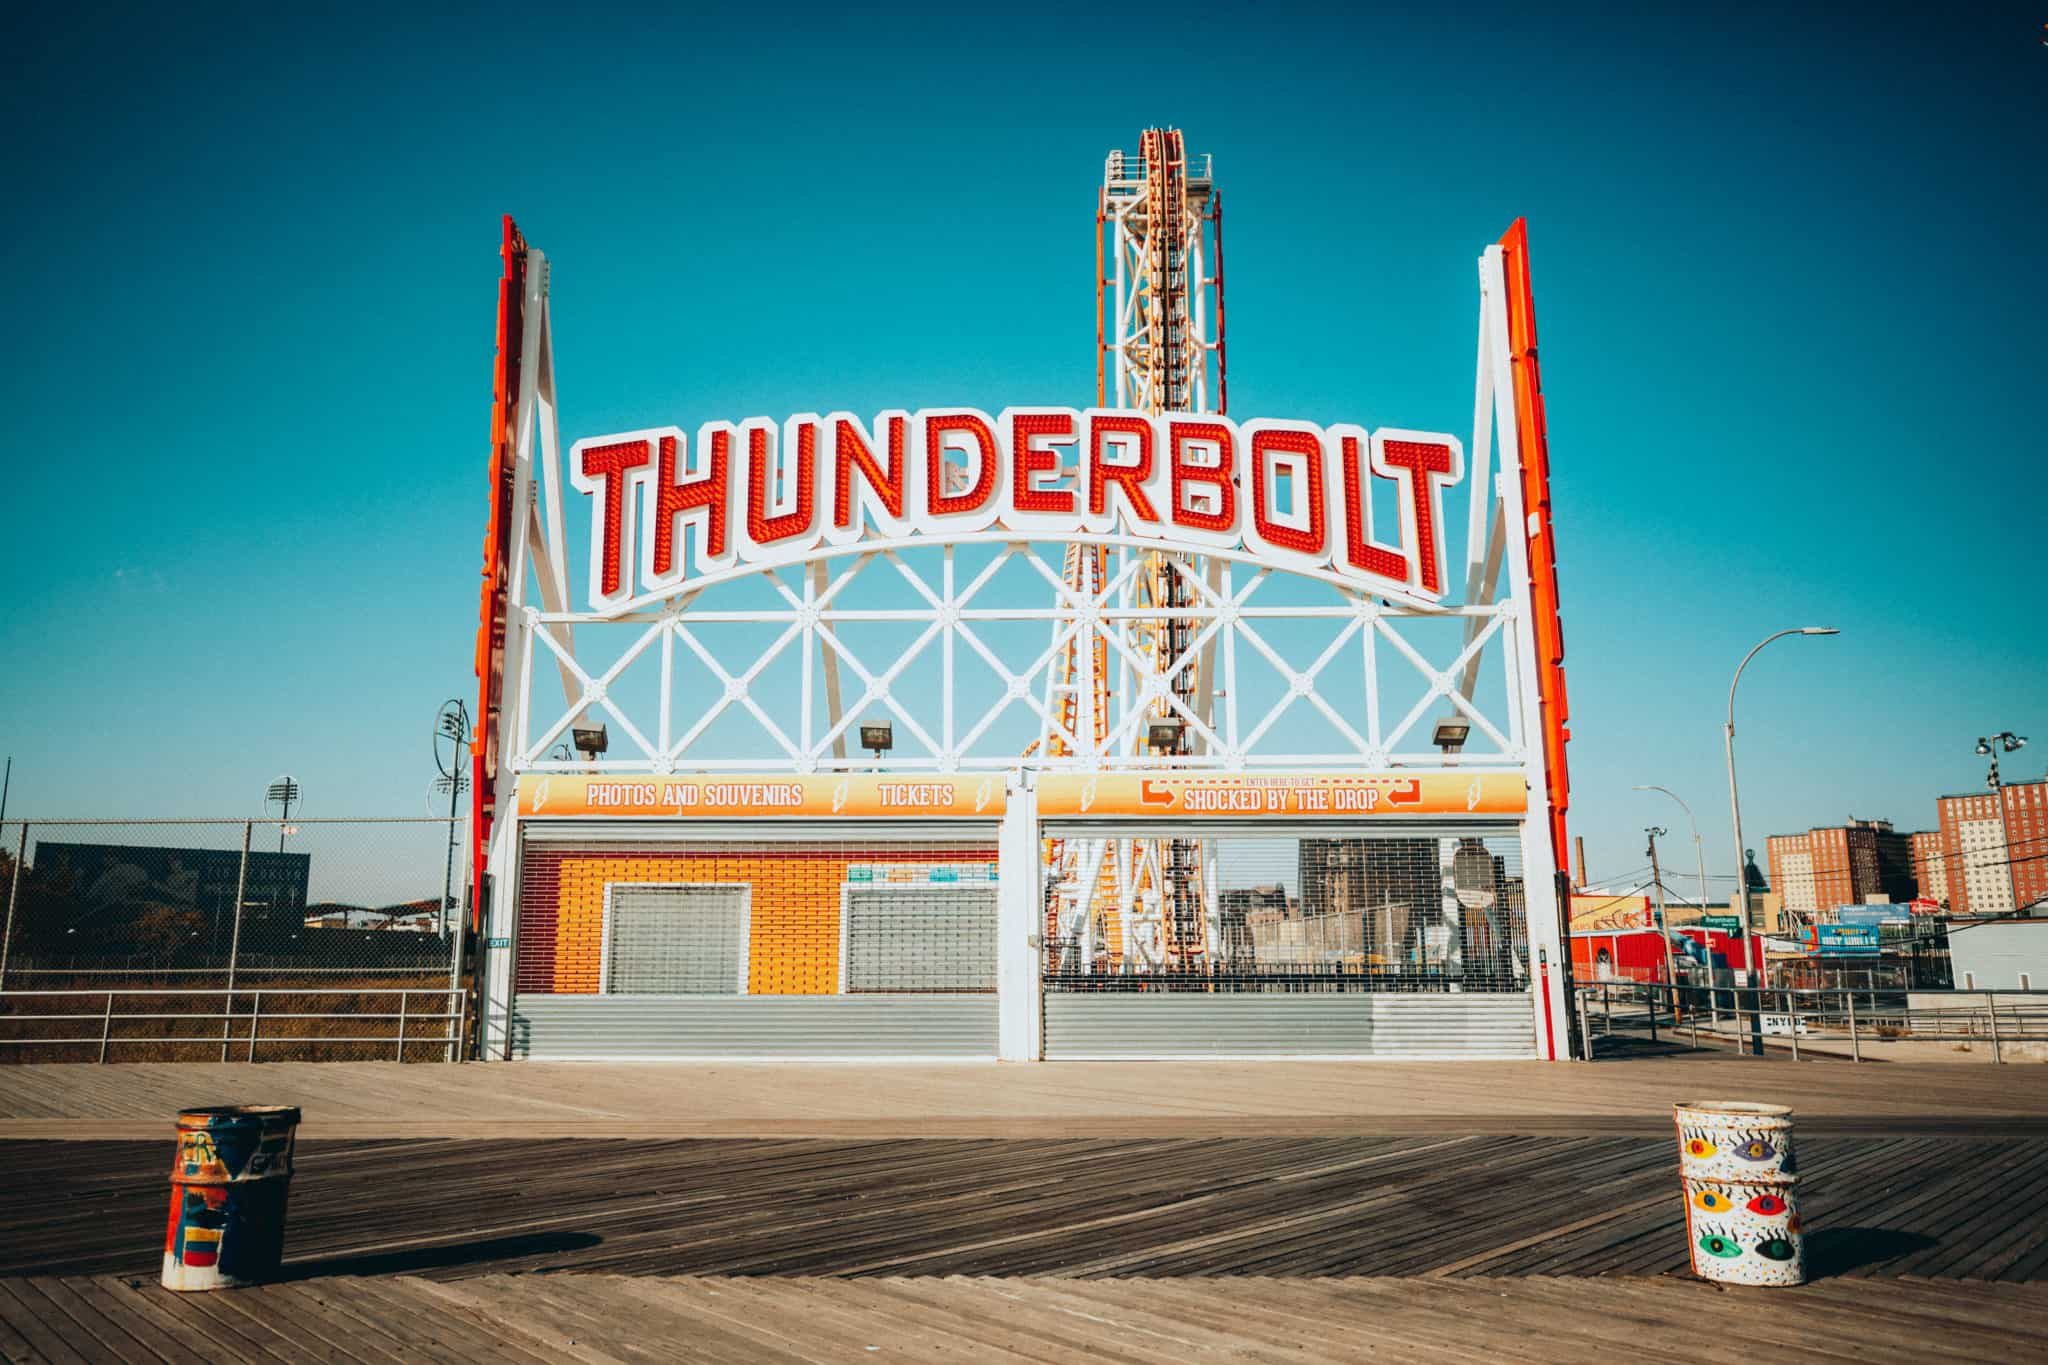 Thunderbolt Sign at Coney Island - Instagram Spots In NYC